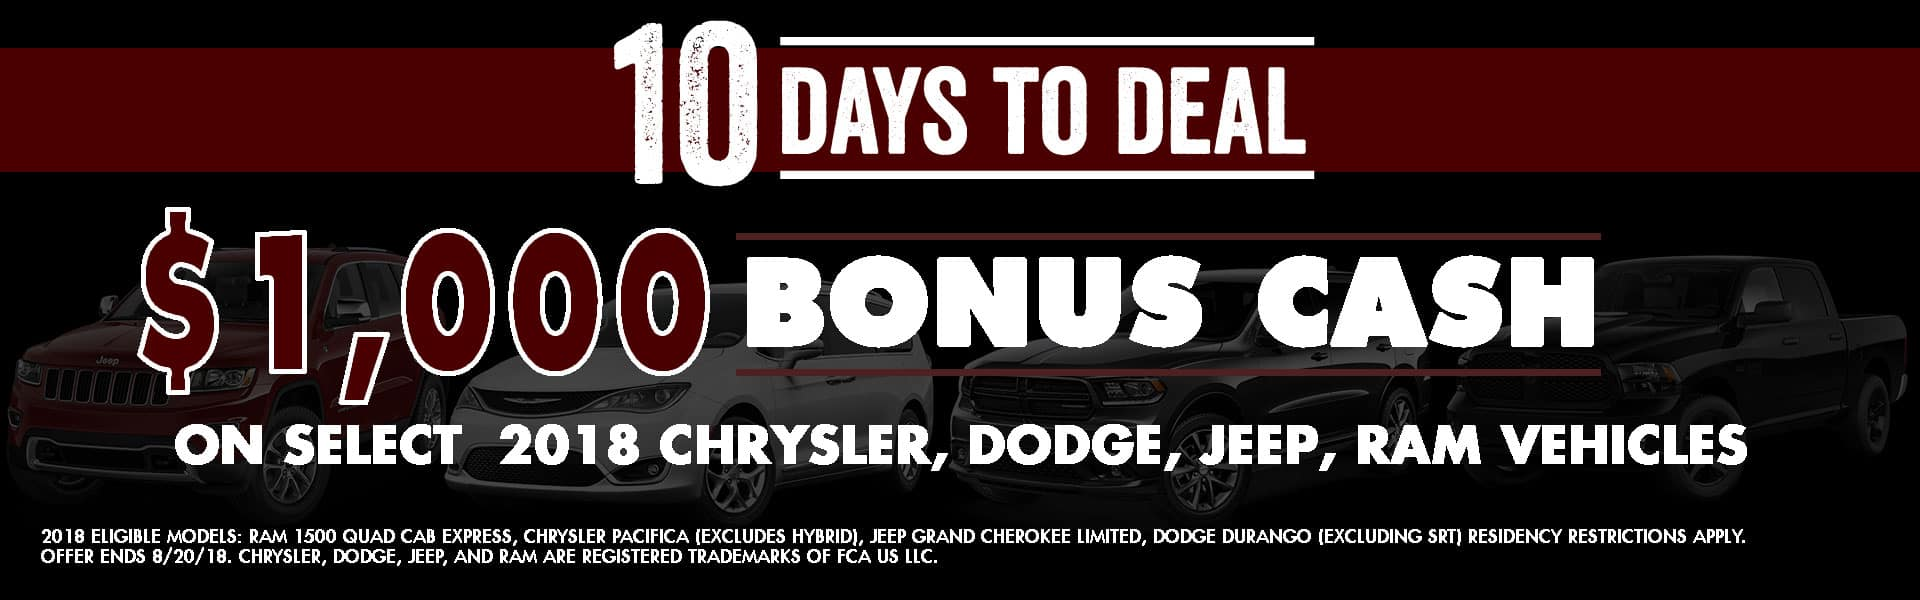 10 days to deal, Diehl of Grove City, Grove City, PA Chrysler Jeep Dodge Ram Durango Pacifica Grand Cherokee Ram